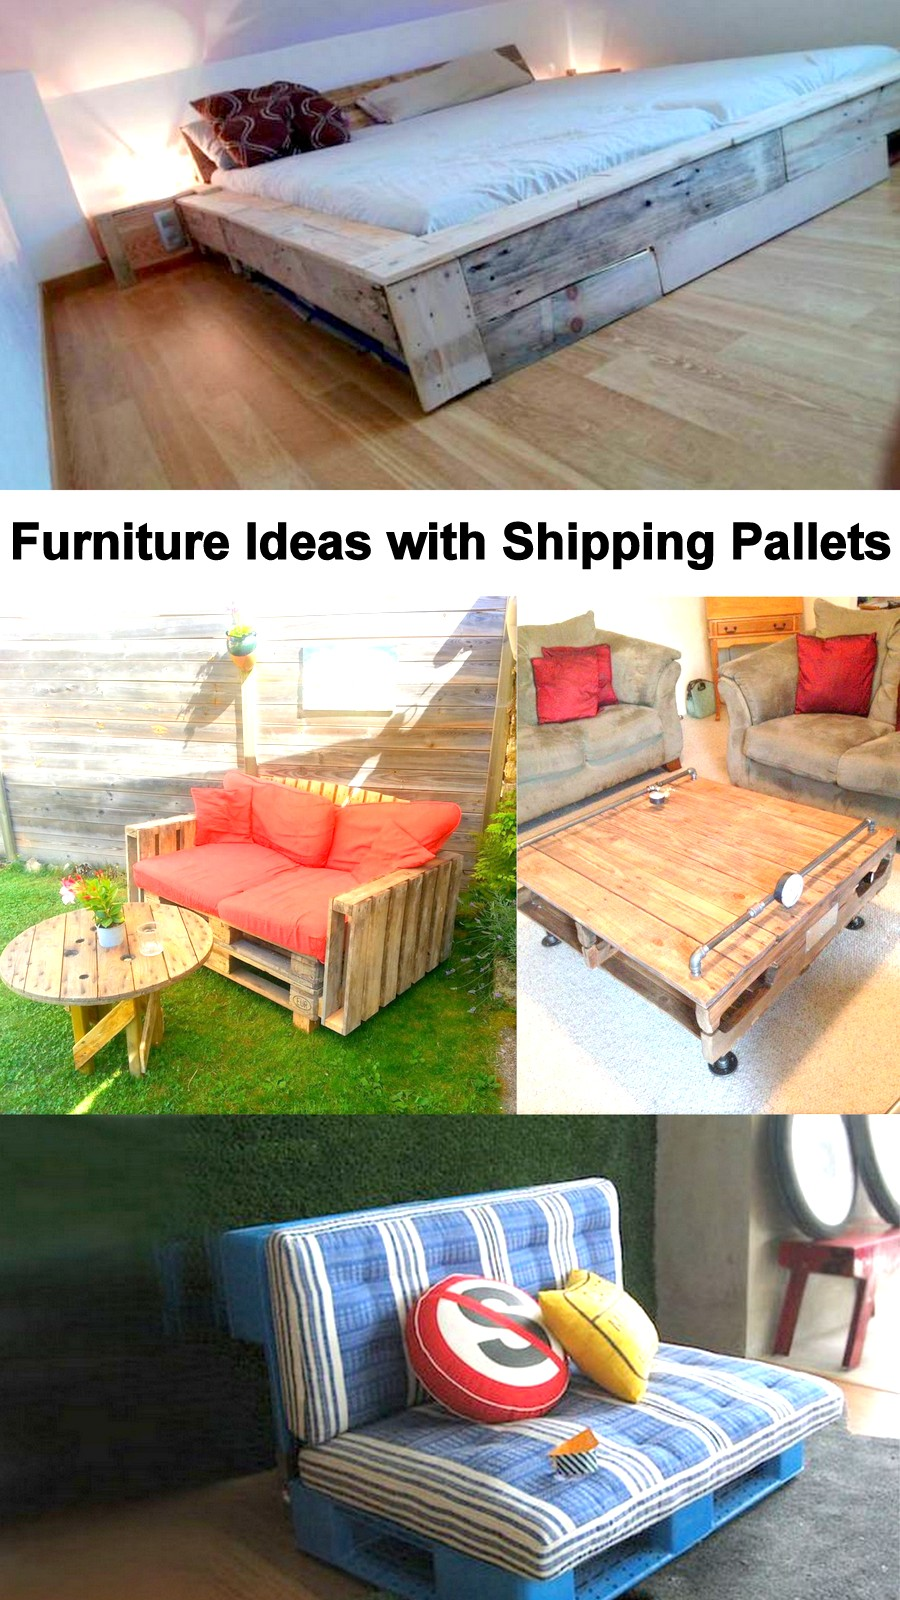 furniture ideas with shipping pallets pallet ideas. Black Bedroom Furniture Sets. Home Design Ideas